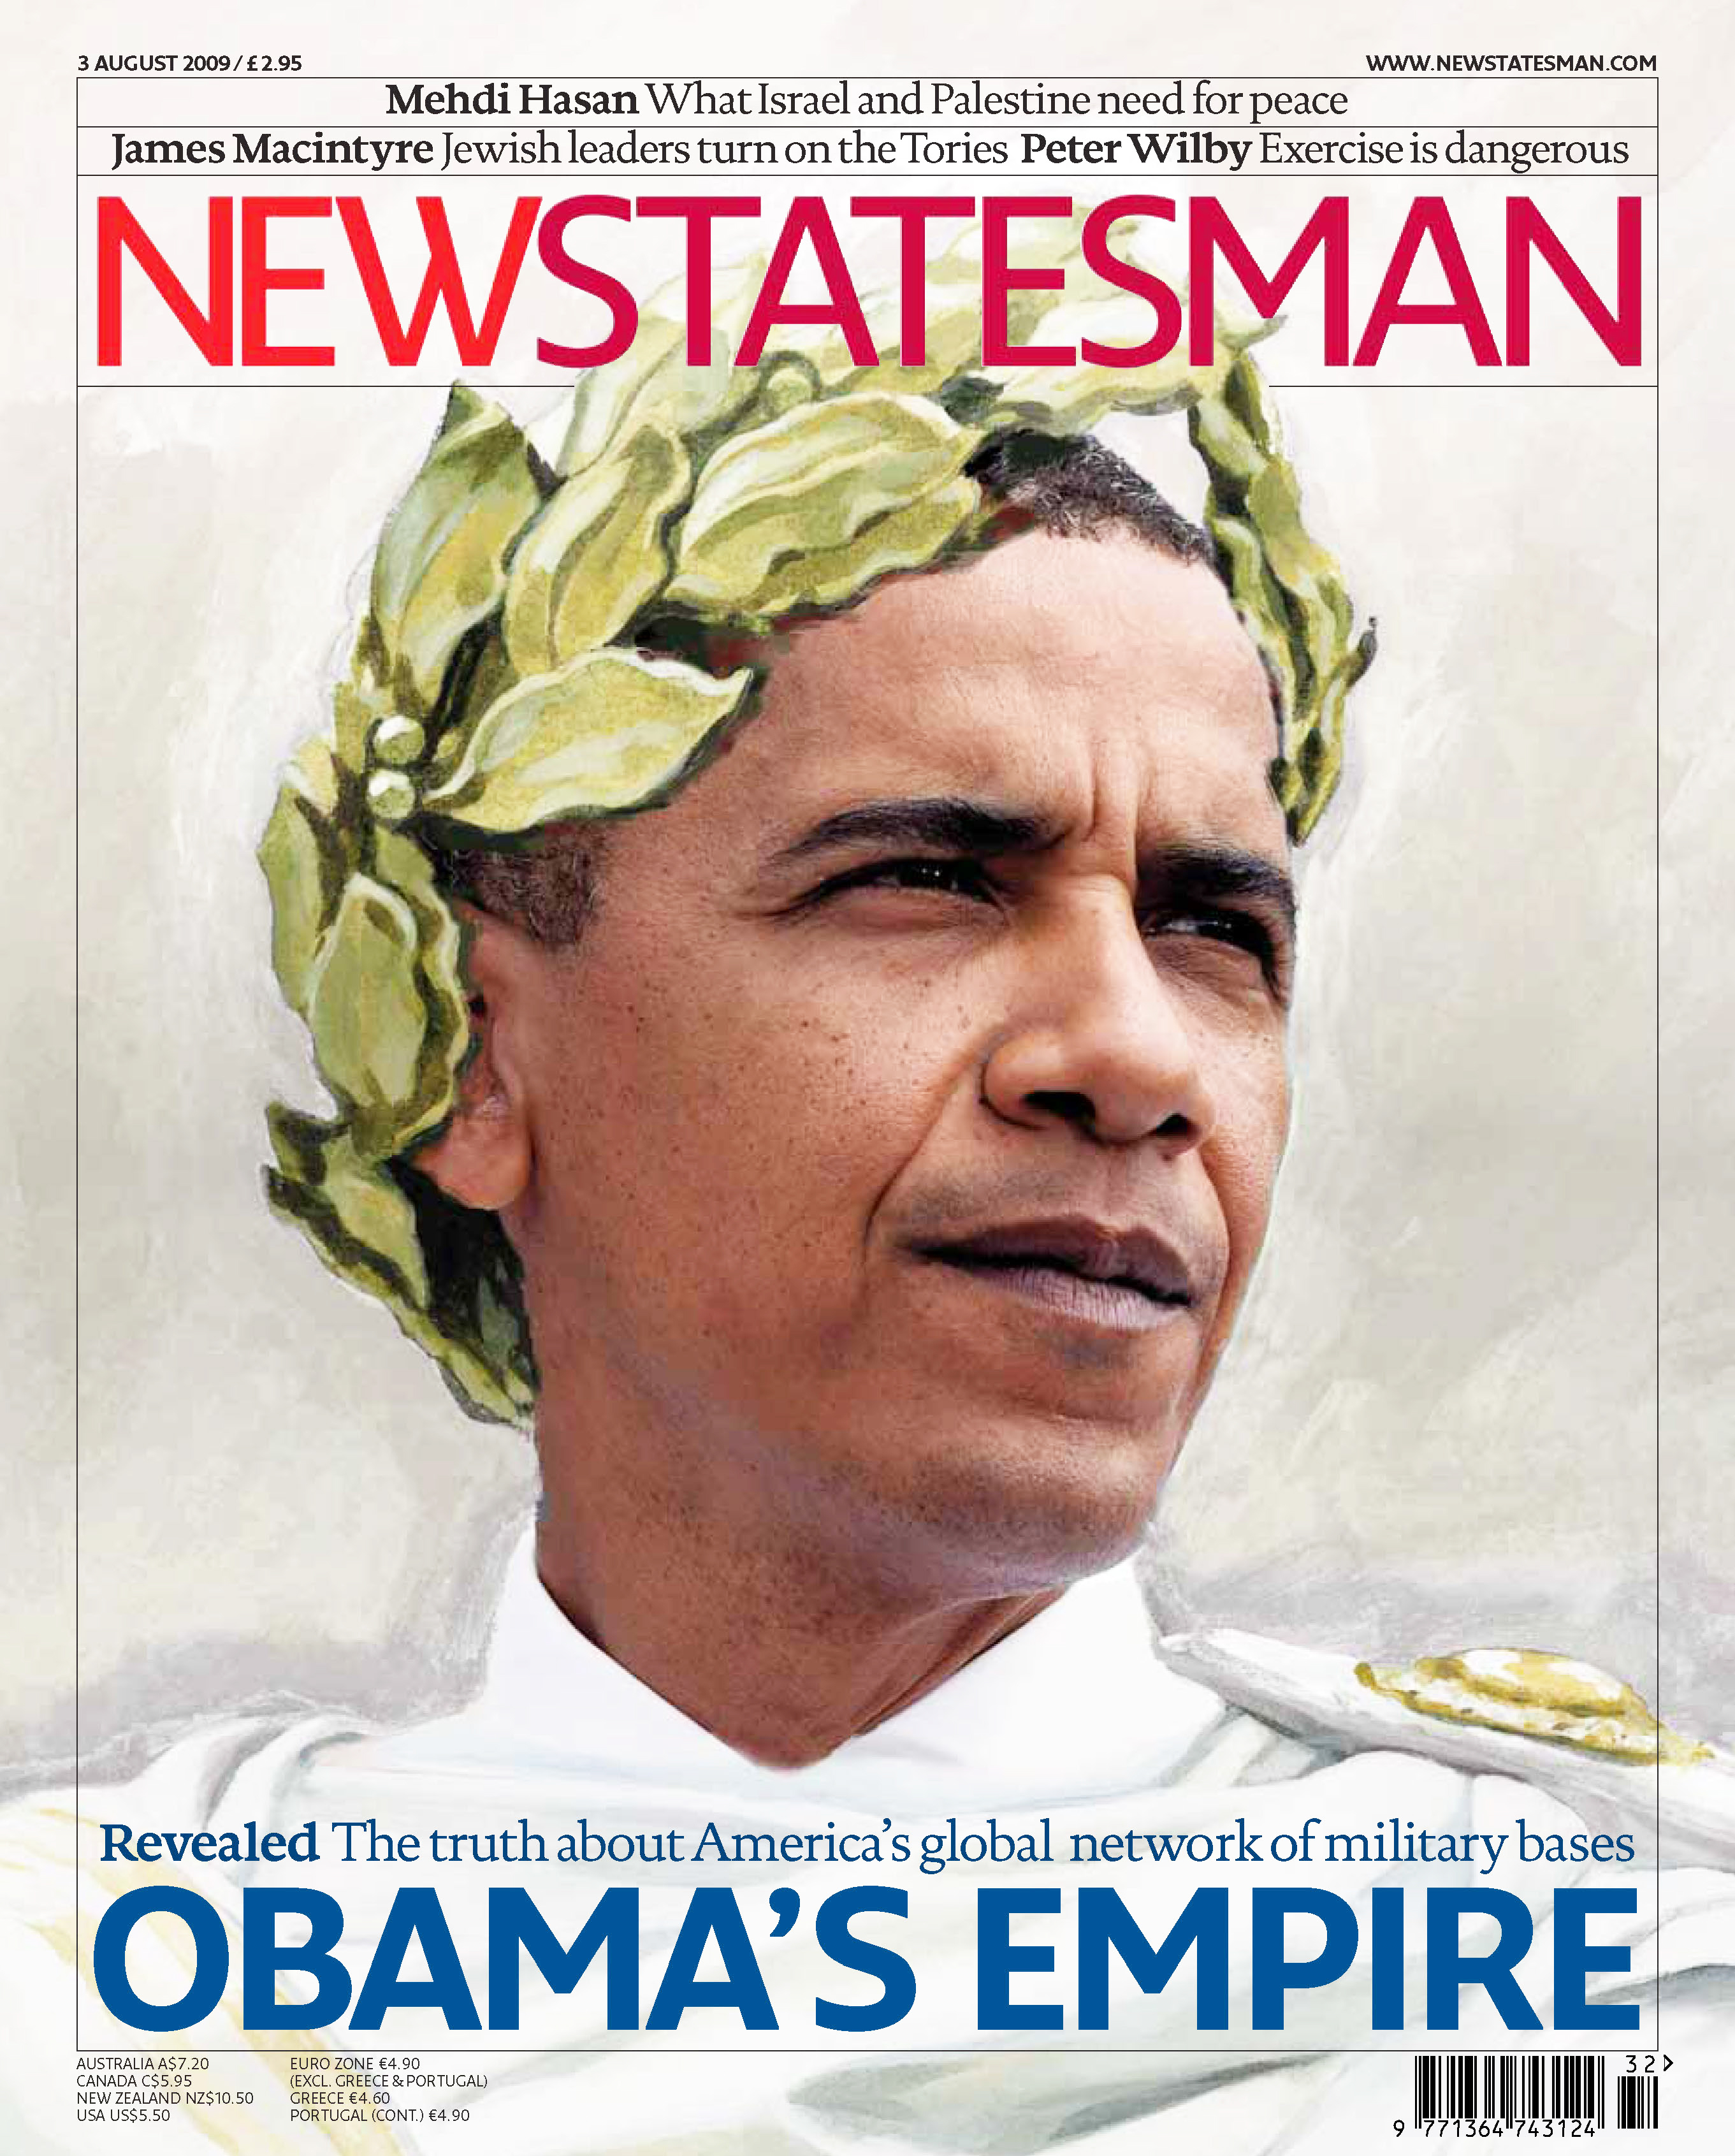 New Statesman's 3 August 2009 cover likens Obama to Julius Caesar